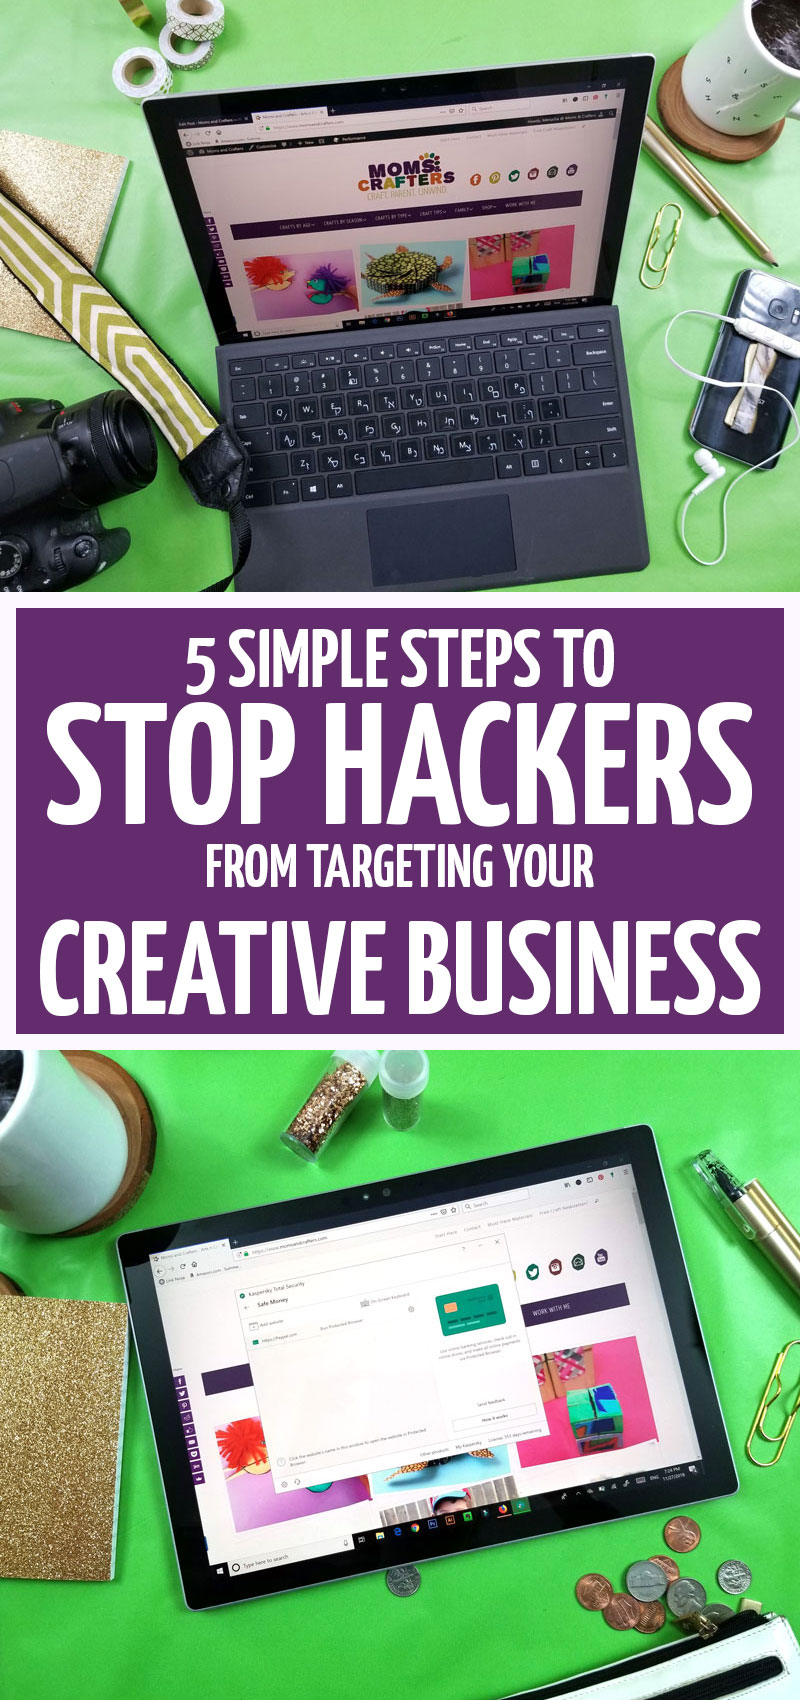 Click to learn how to stop hackers if you're a small business owner, craft seller, or other creative! This tips for selling crafts help you with digital security and are great tips for craft bloggers too! #smallbusiness #craftblogger #security